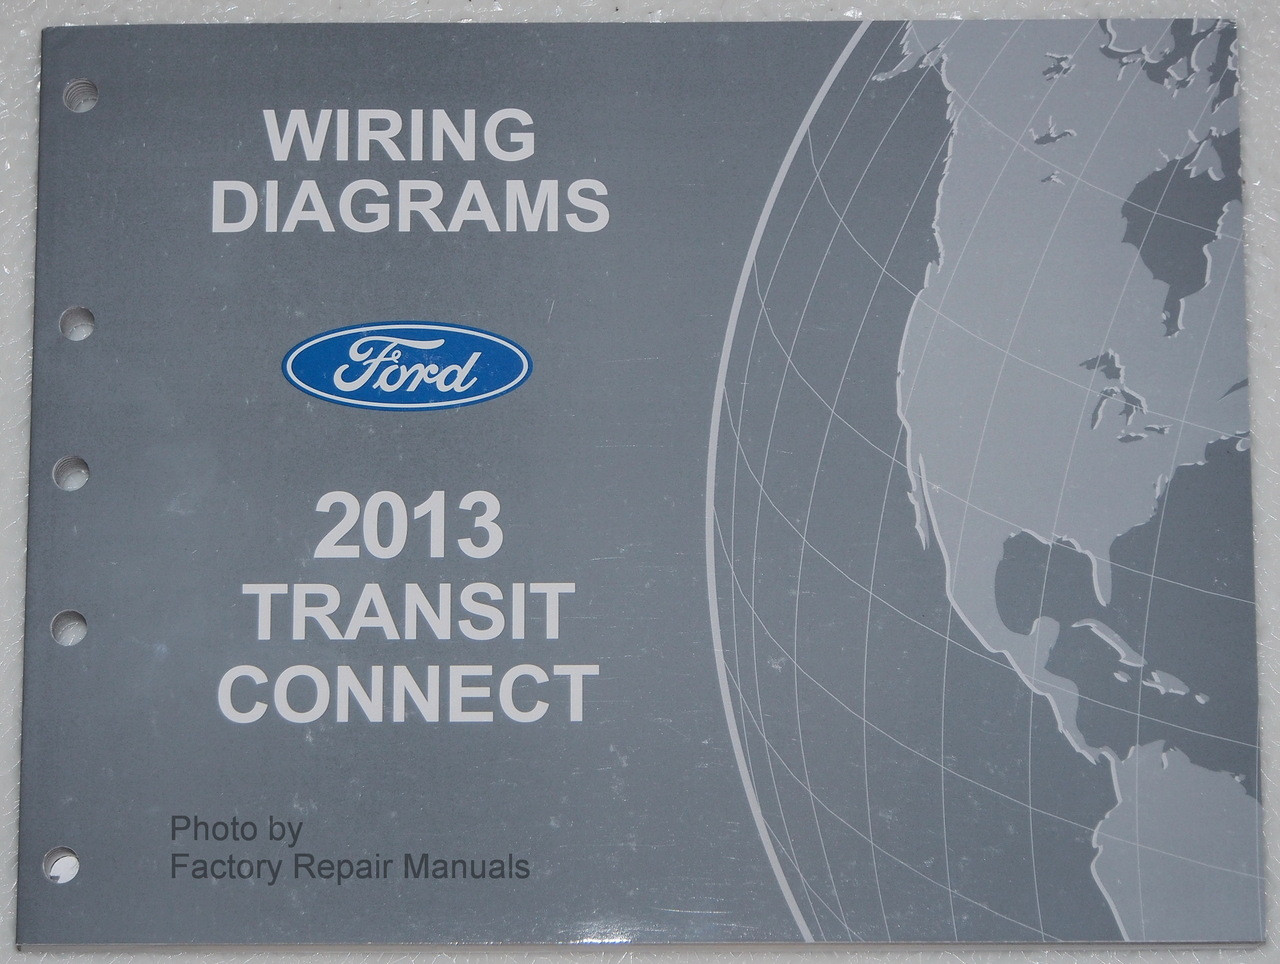 2013 Ford Transit Connect Electrical Wiring Diagrams Original Used Manual -  Factory Repair ManualsFactory Repair Manuals